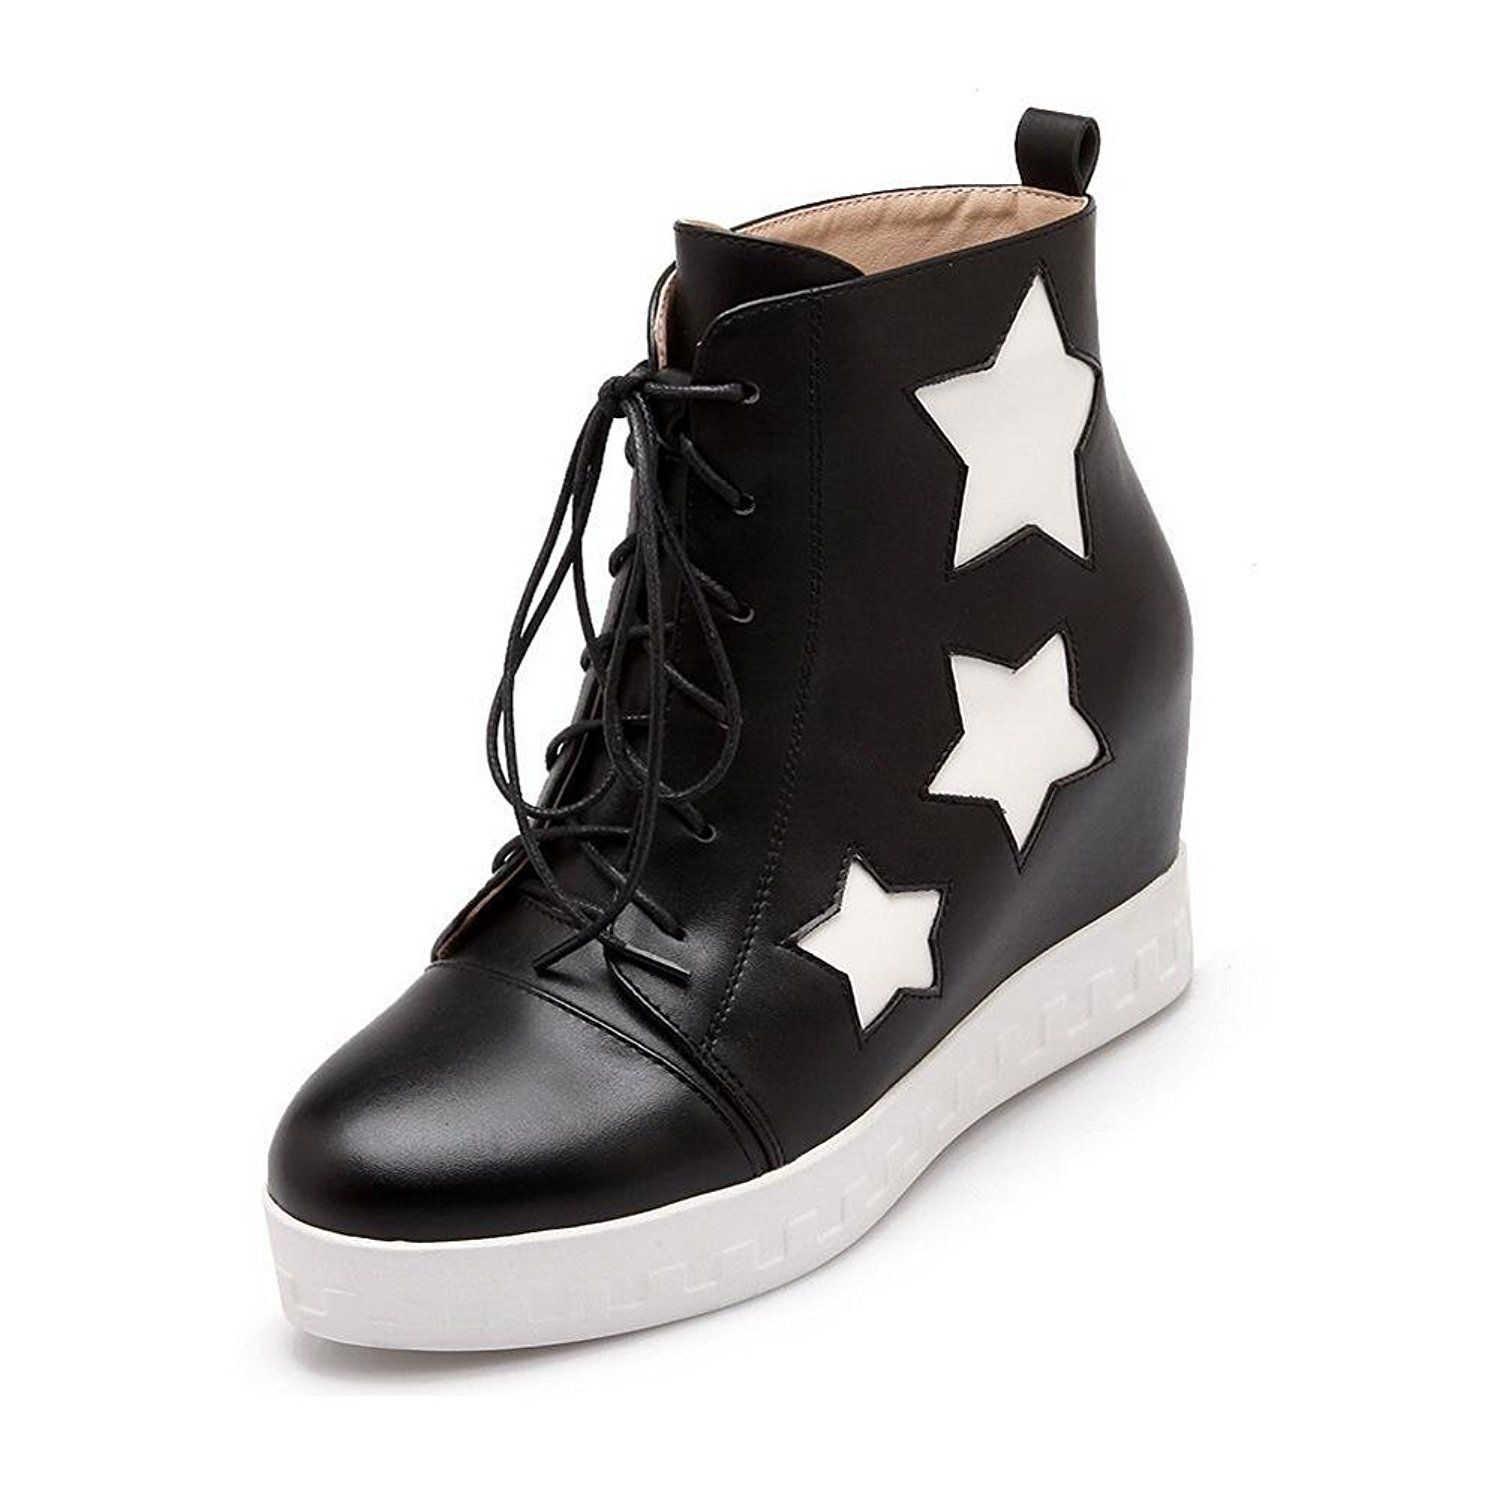 Women's Lace-up High-Heels PU Assorted Color Low-top Boots